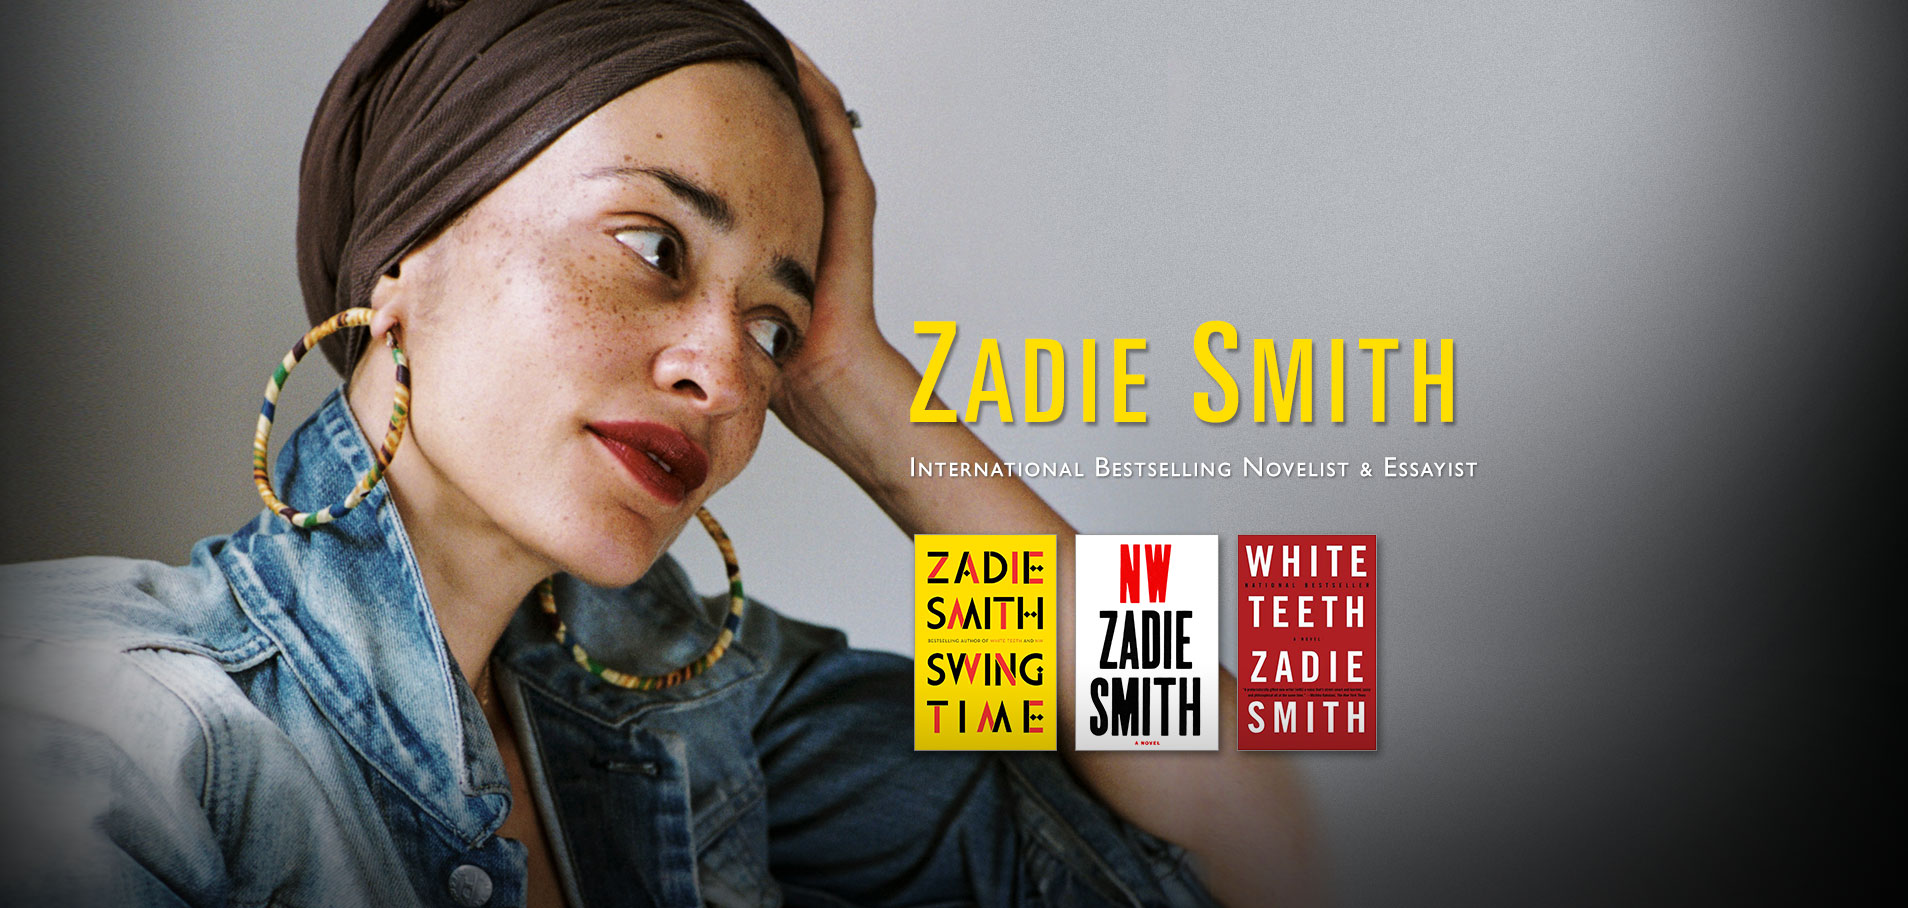 Zadie Smith image